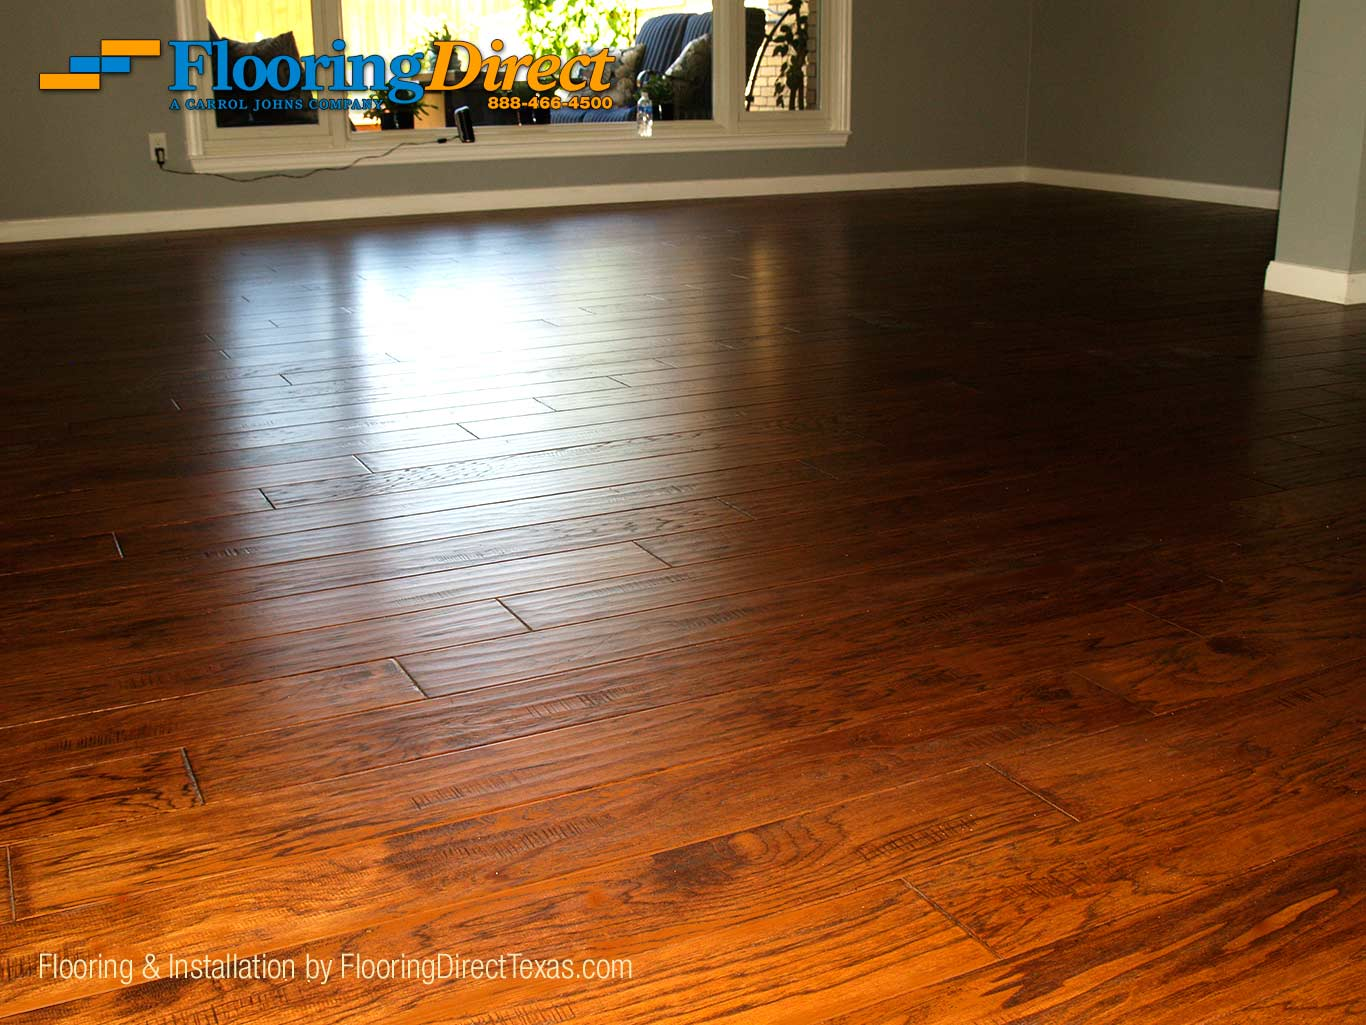 Hardwood flooring in plano flooring direct for Hardwood flooring sale